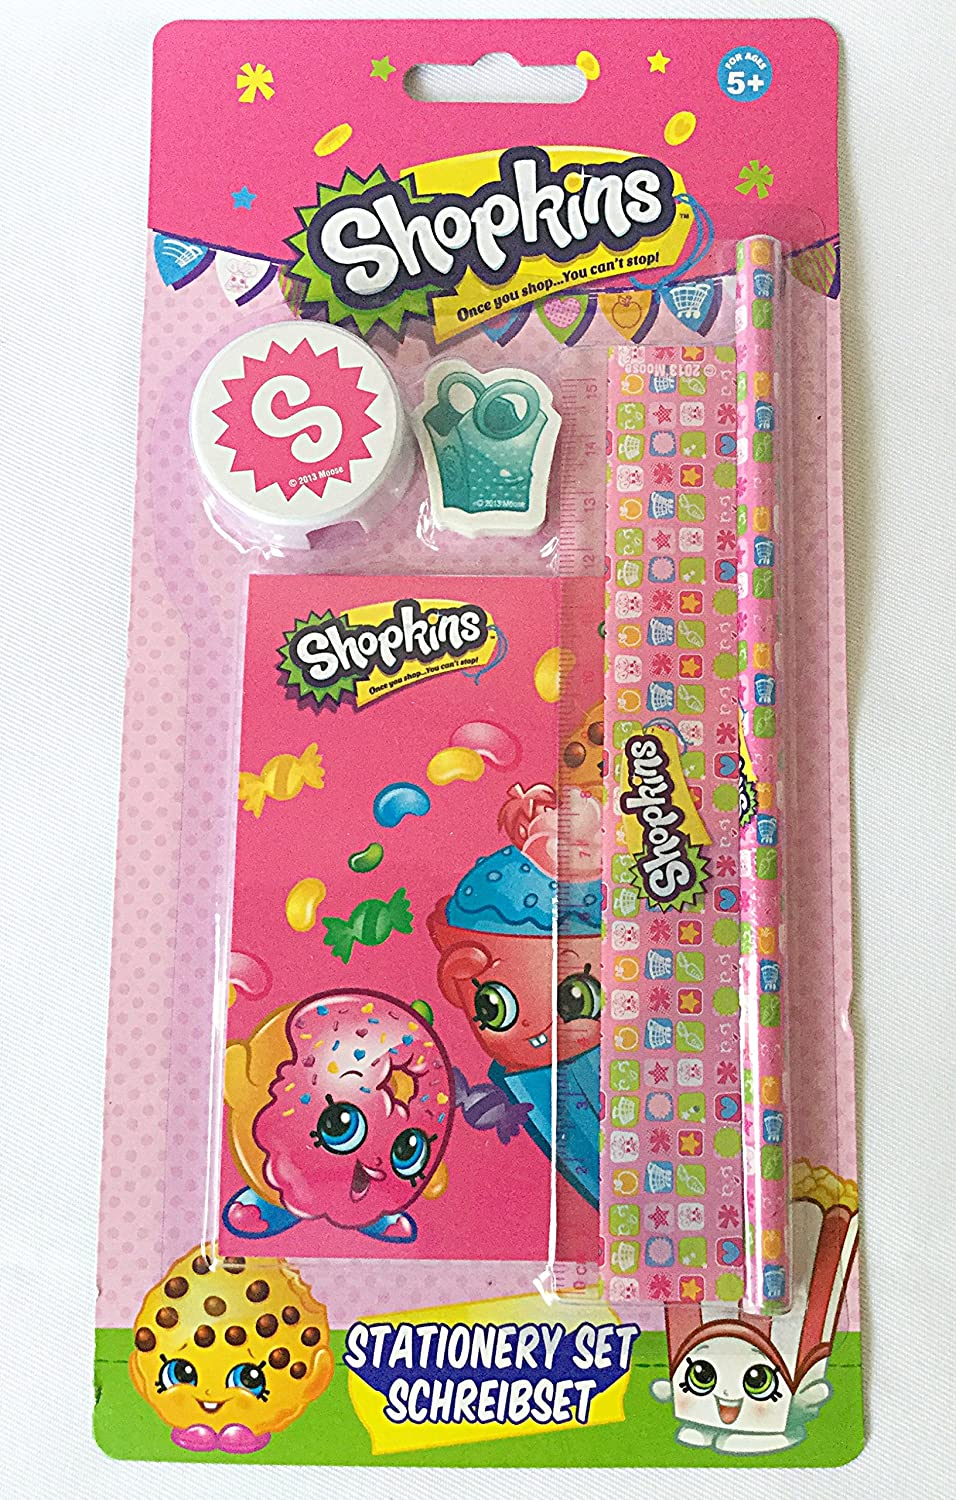 Shopkins Stationery Set: Amazon.de: Bürobedarf & Schreibwaren